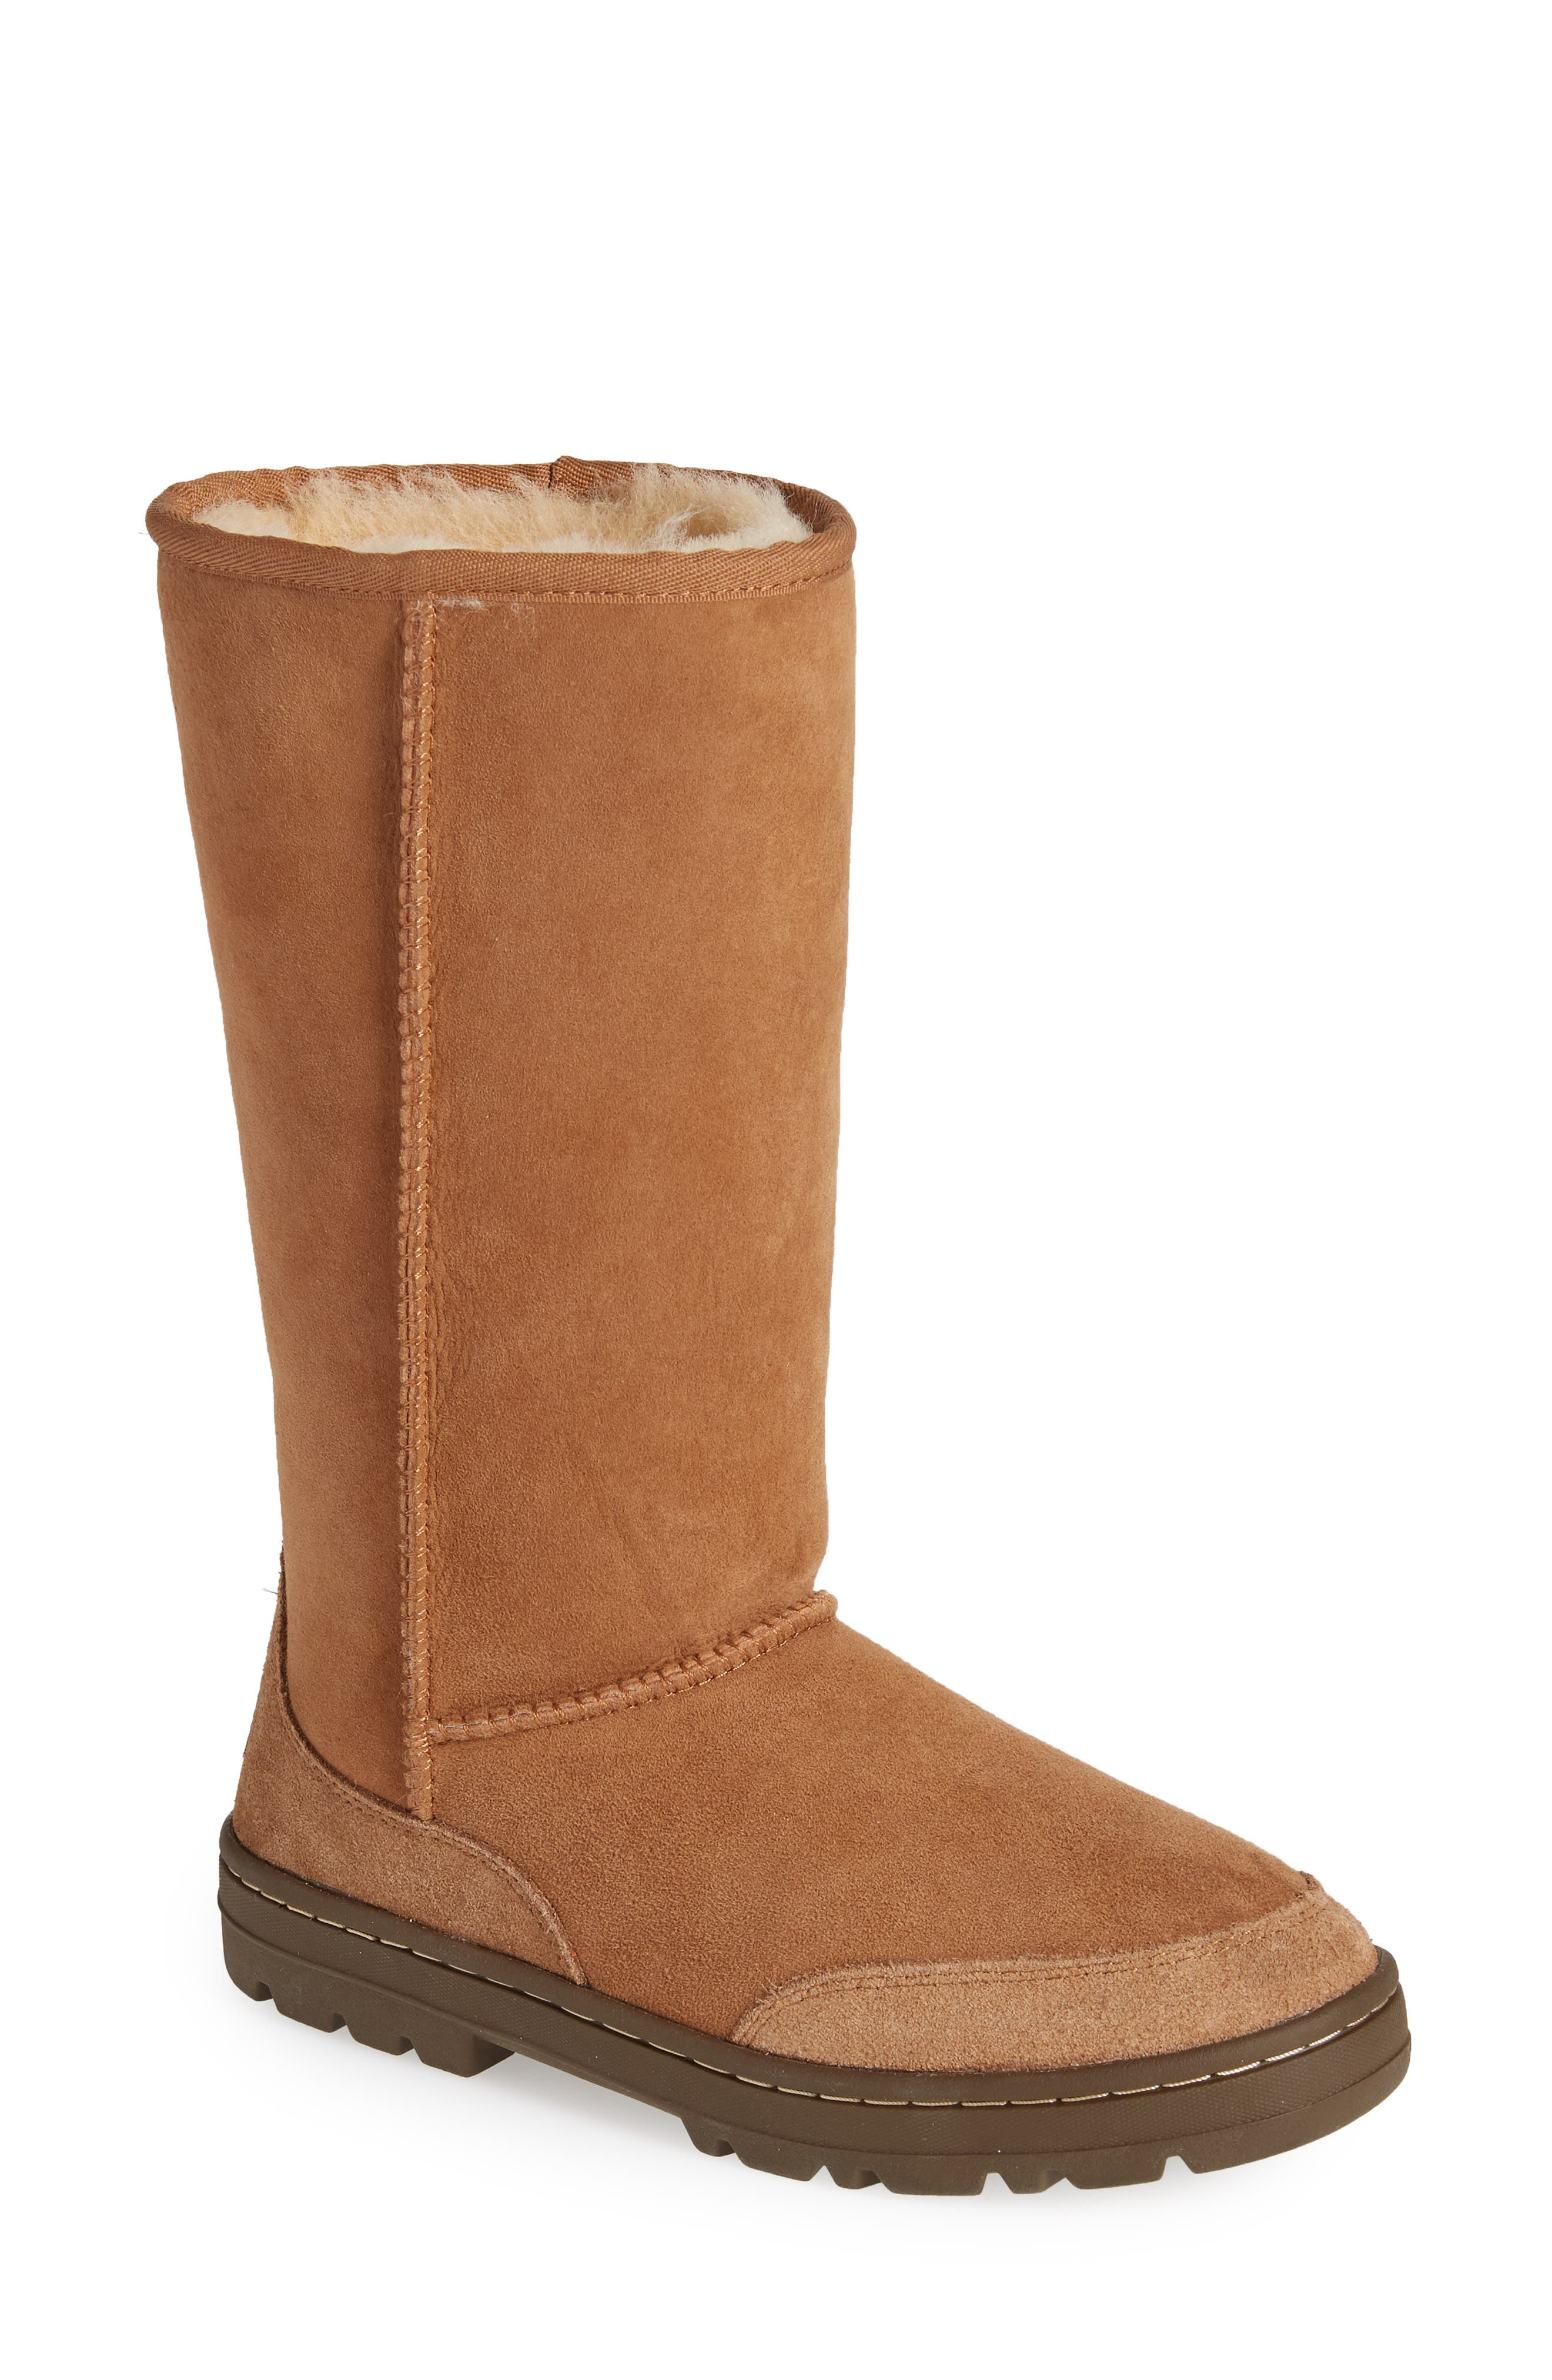 Ugg Ultra Revival Genuine Shearling Tall Boot in Chestnut